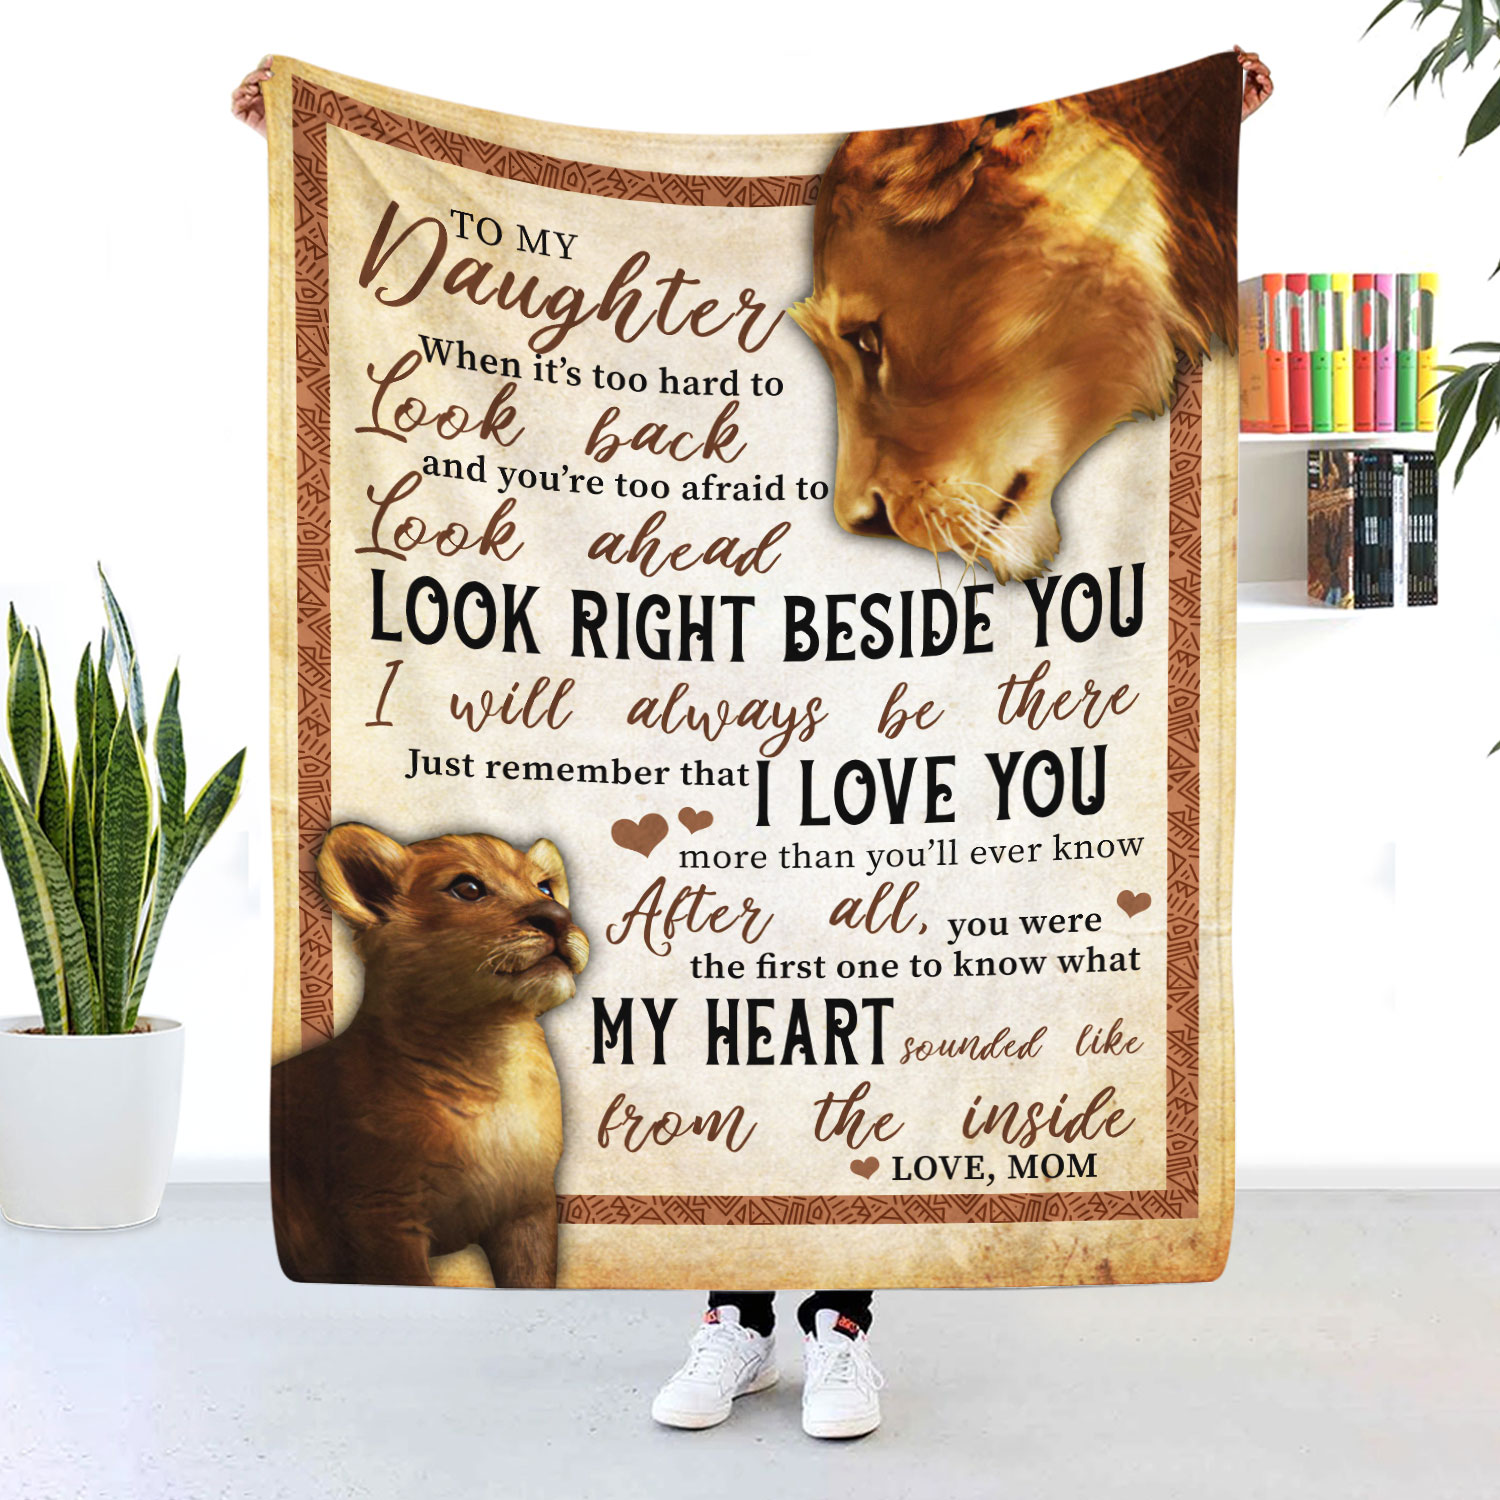 To My Daughter My Heart Sounded Like From The Inside Blanket